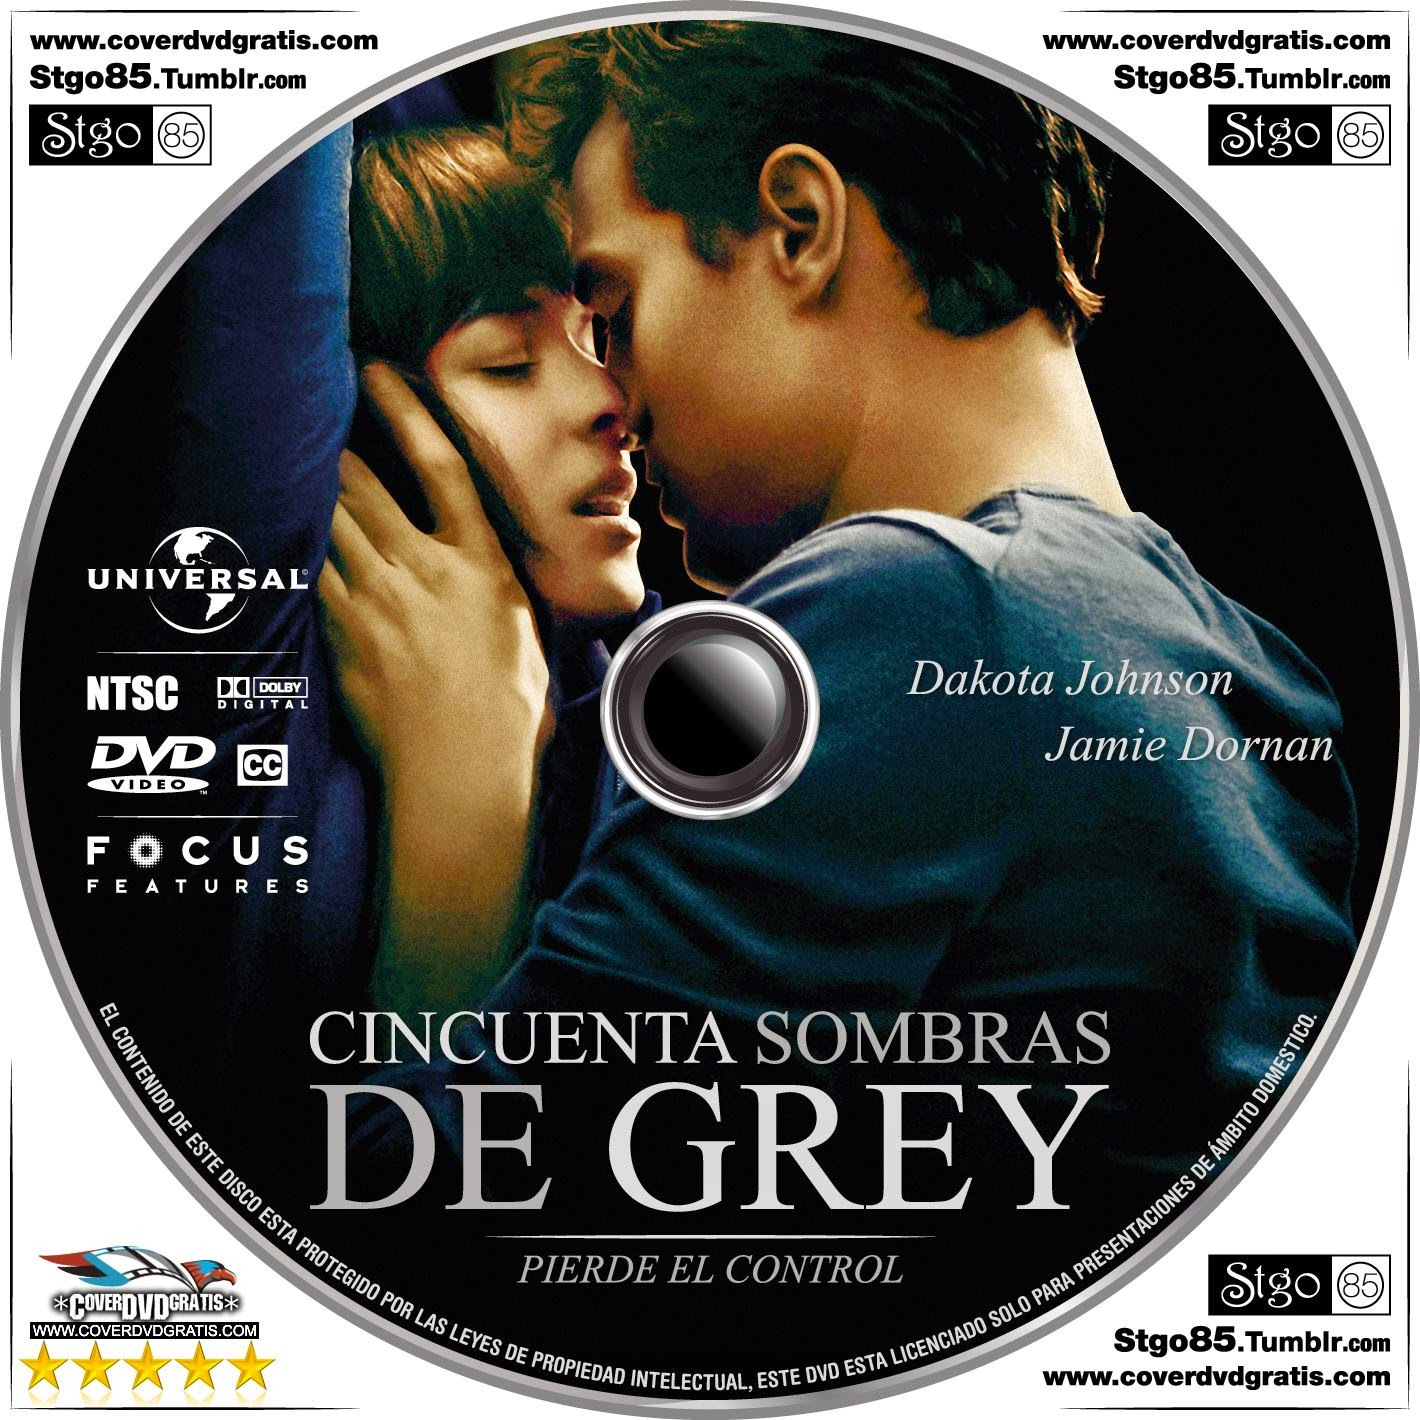 El Libro De Grey Gratis Descargar Galleta Full